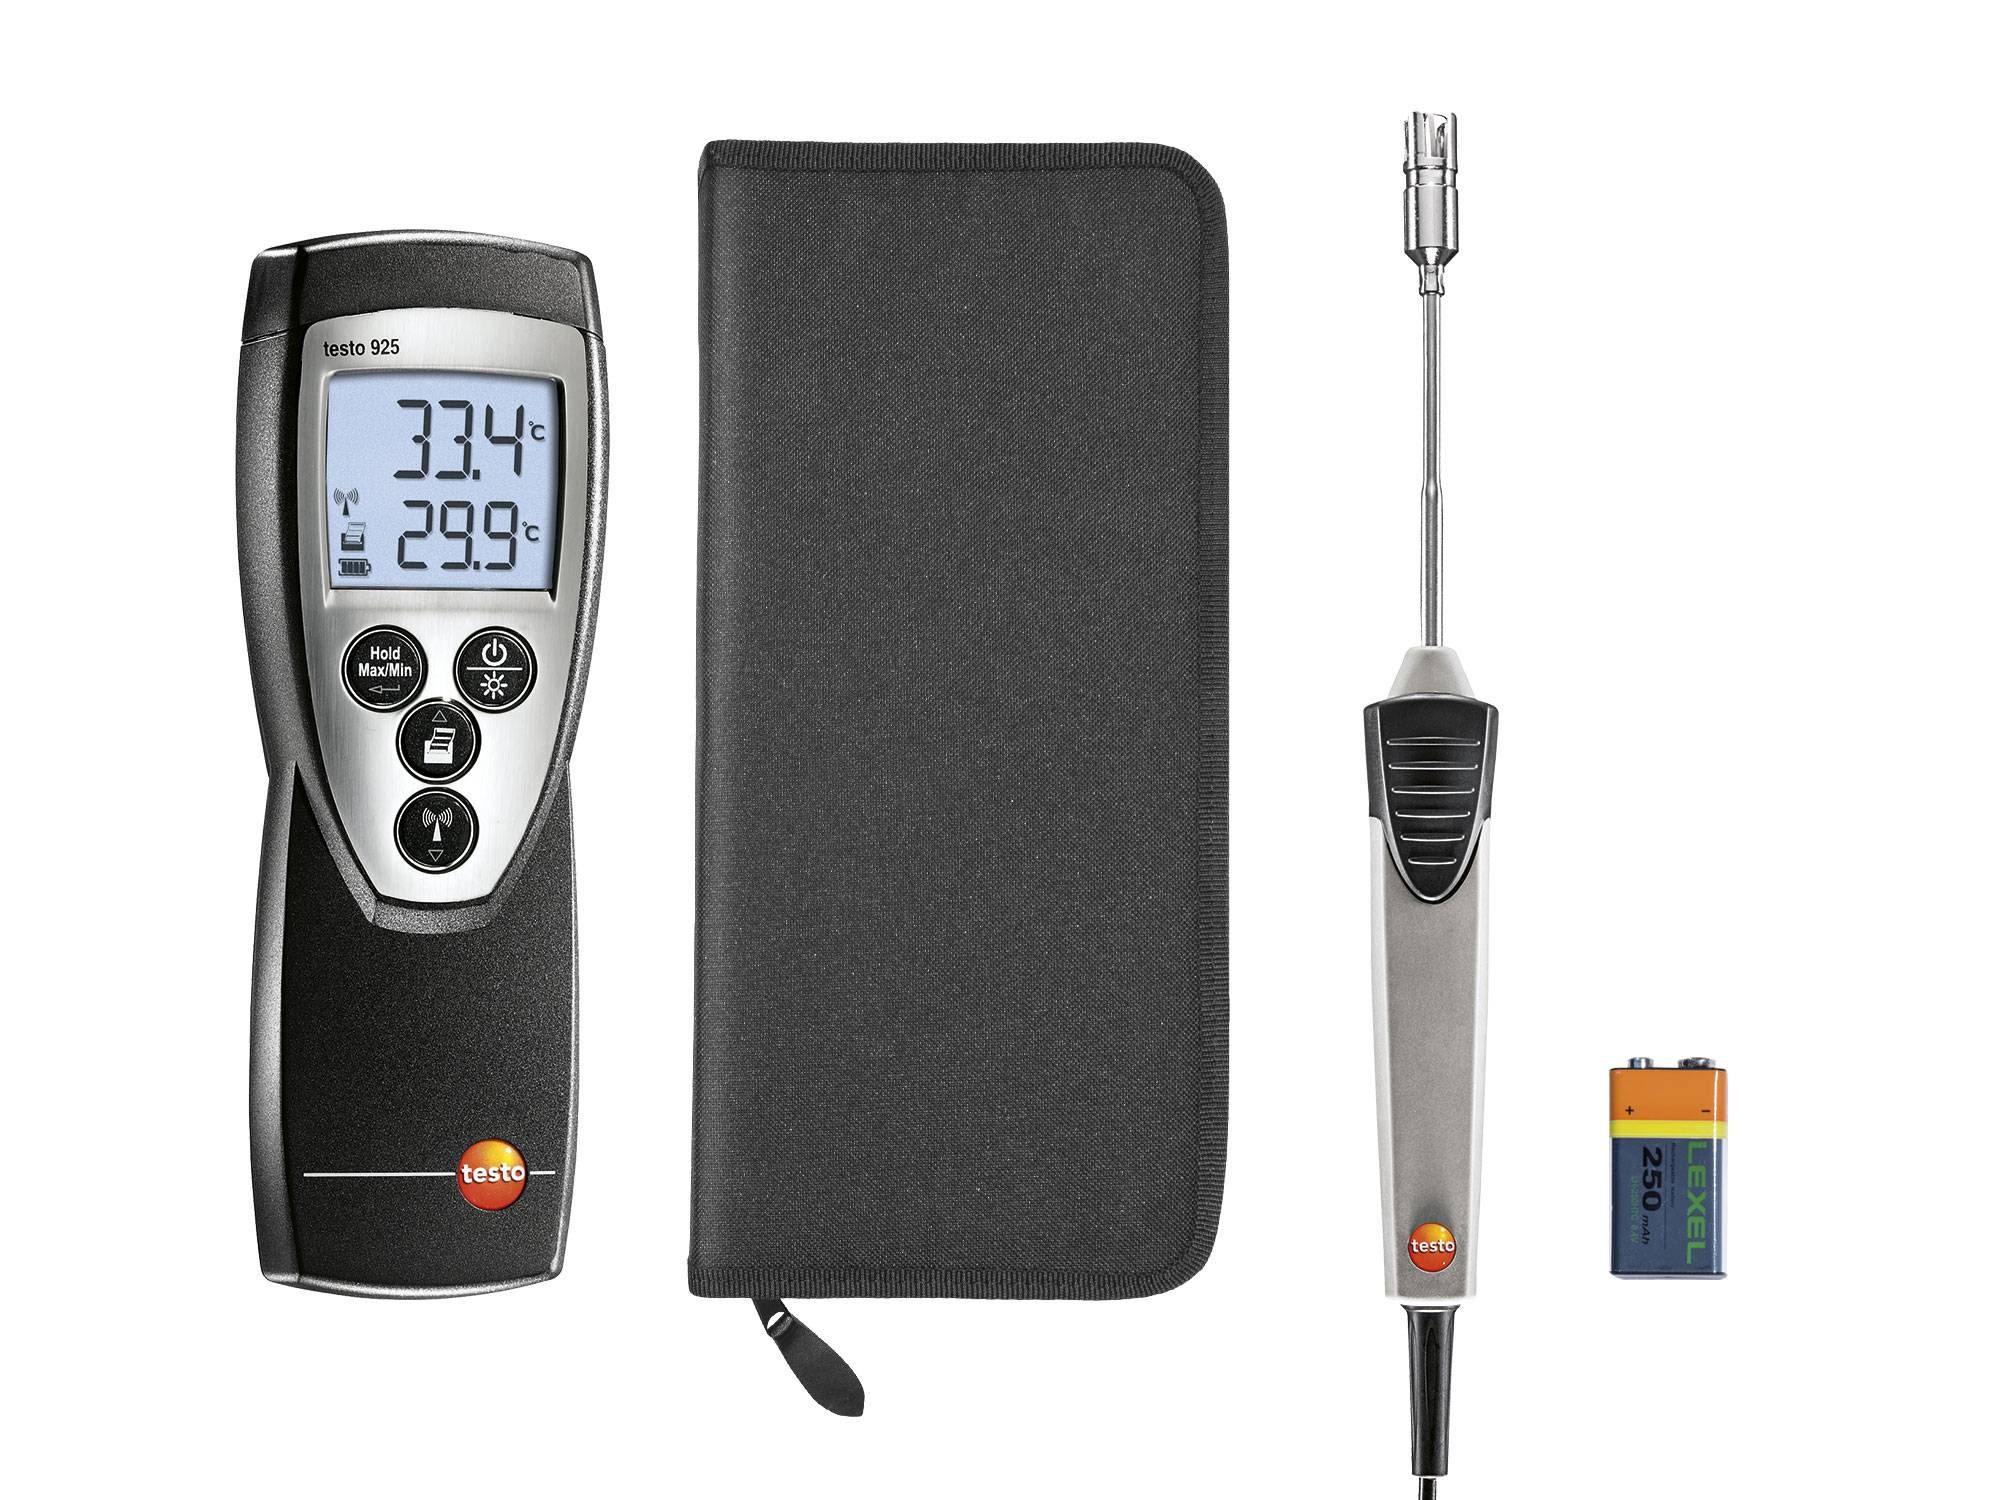 testo 925 set - Temperature meter